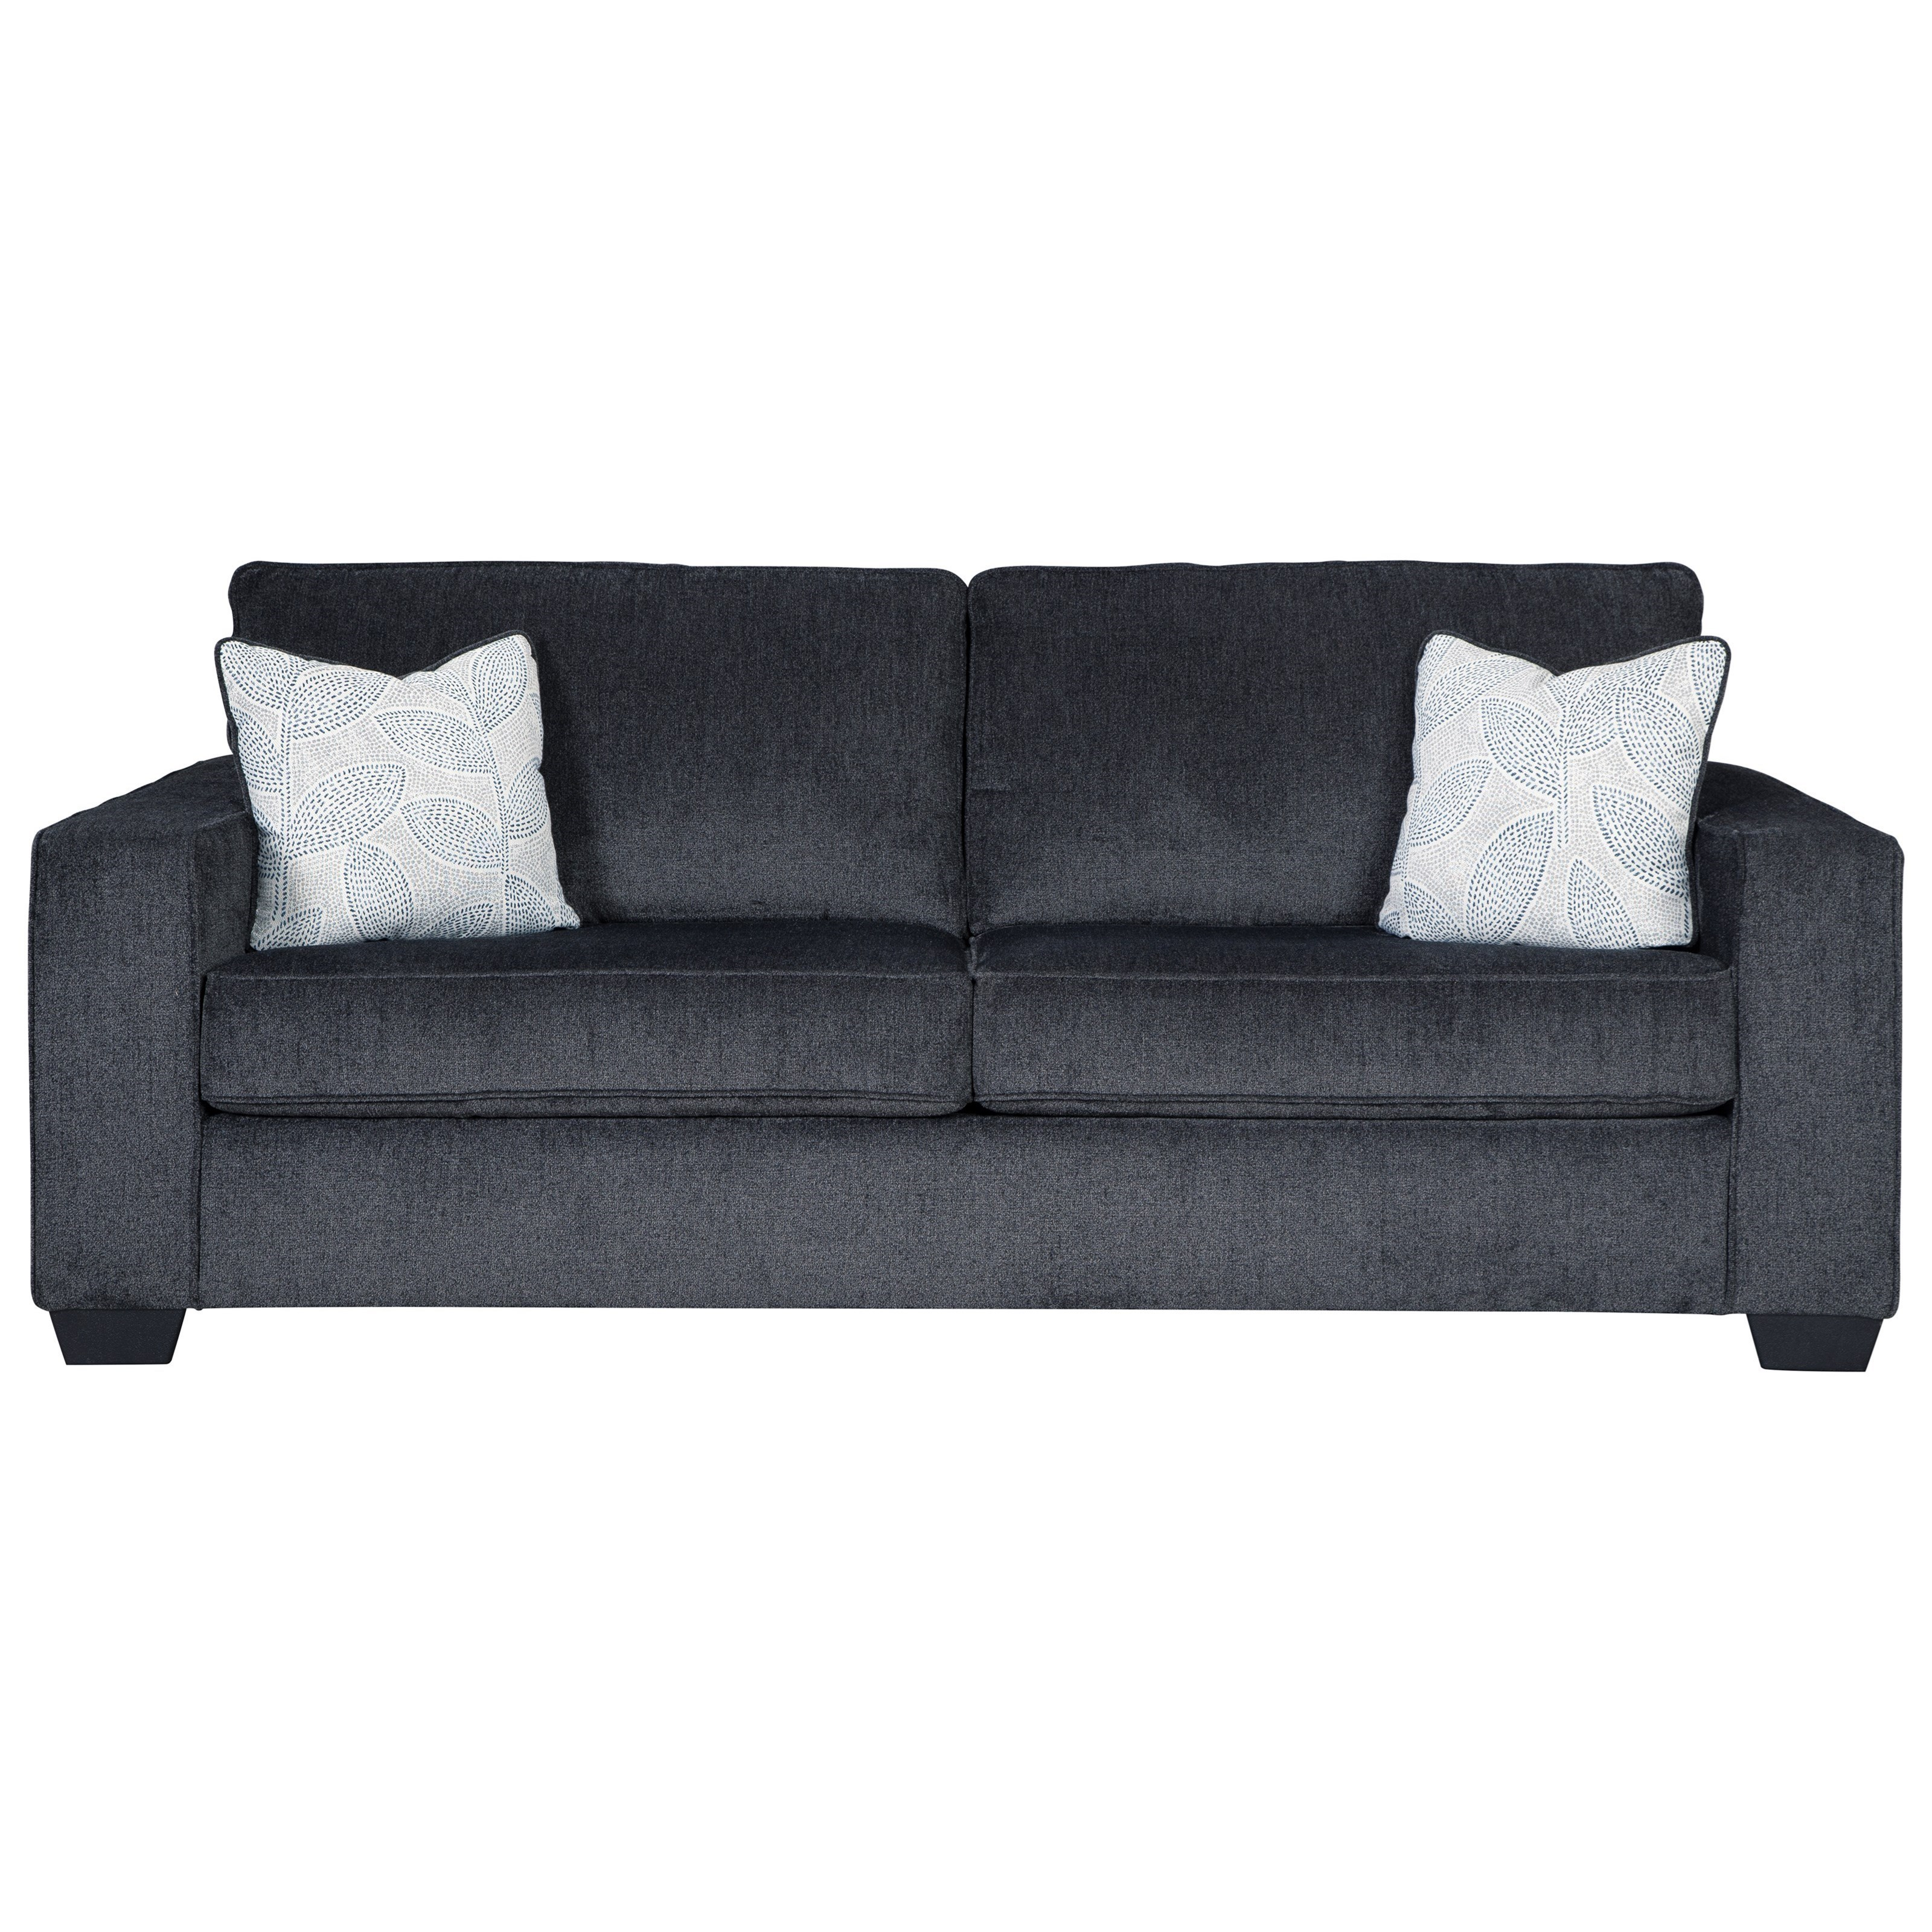 Picture of: Signature Design By Ashley Altari Queen Sofa Sleeper With Memory Foam Mattress Royal Furniture Sleeper Sofas